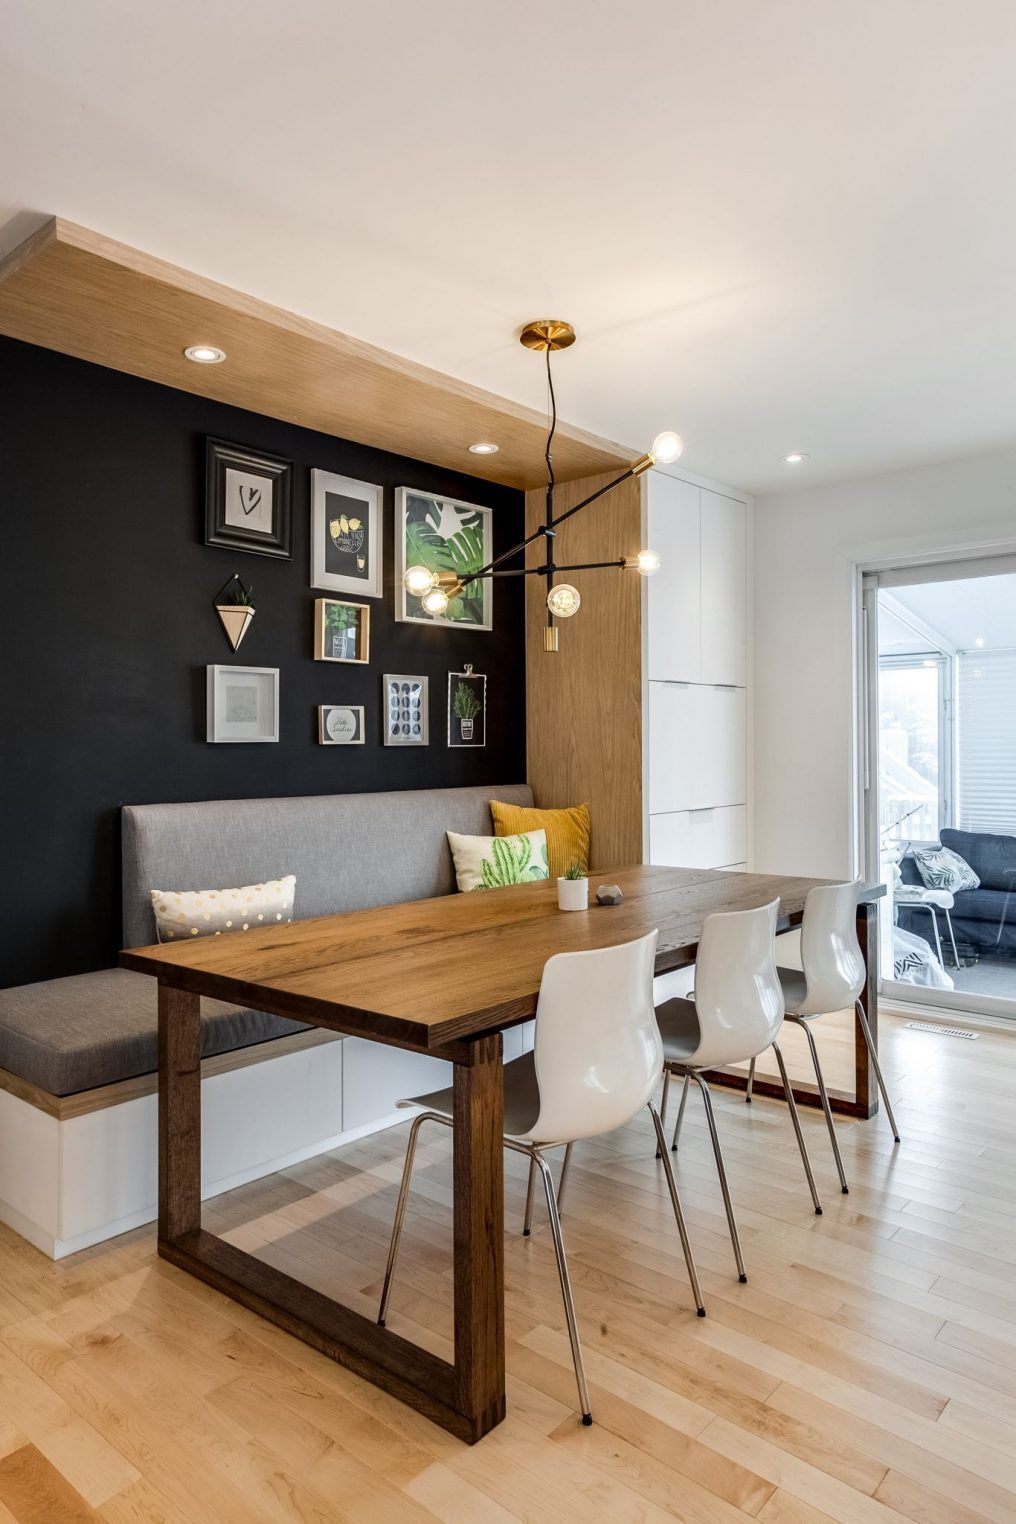 21 Coolest Dining Room Ideas With Color Black 11 Decor Life